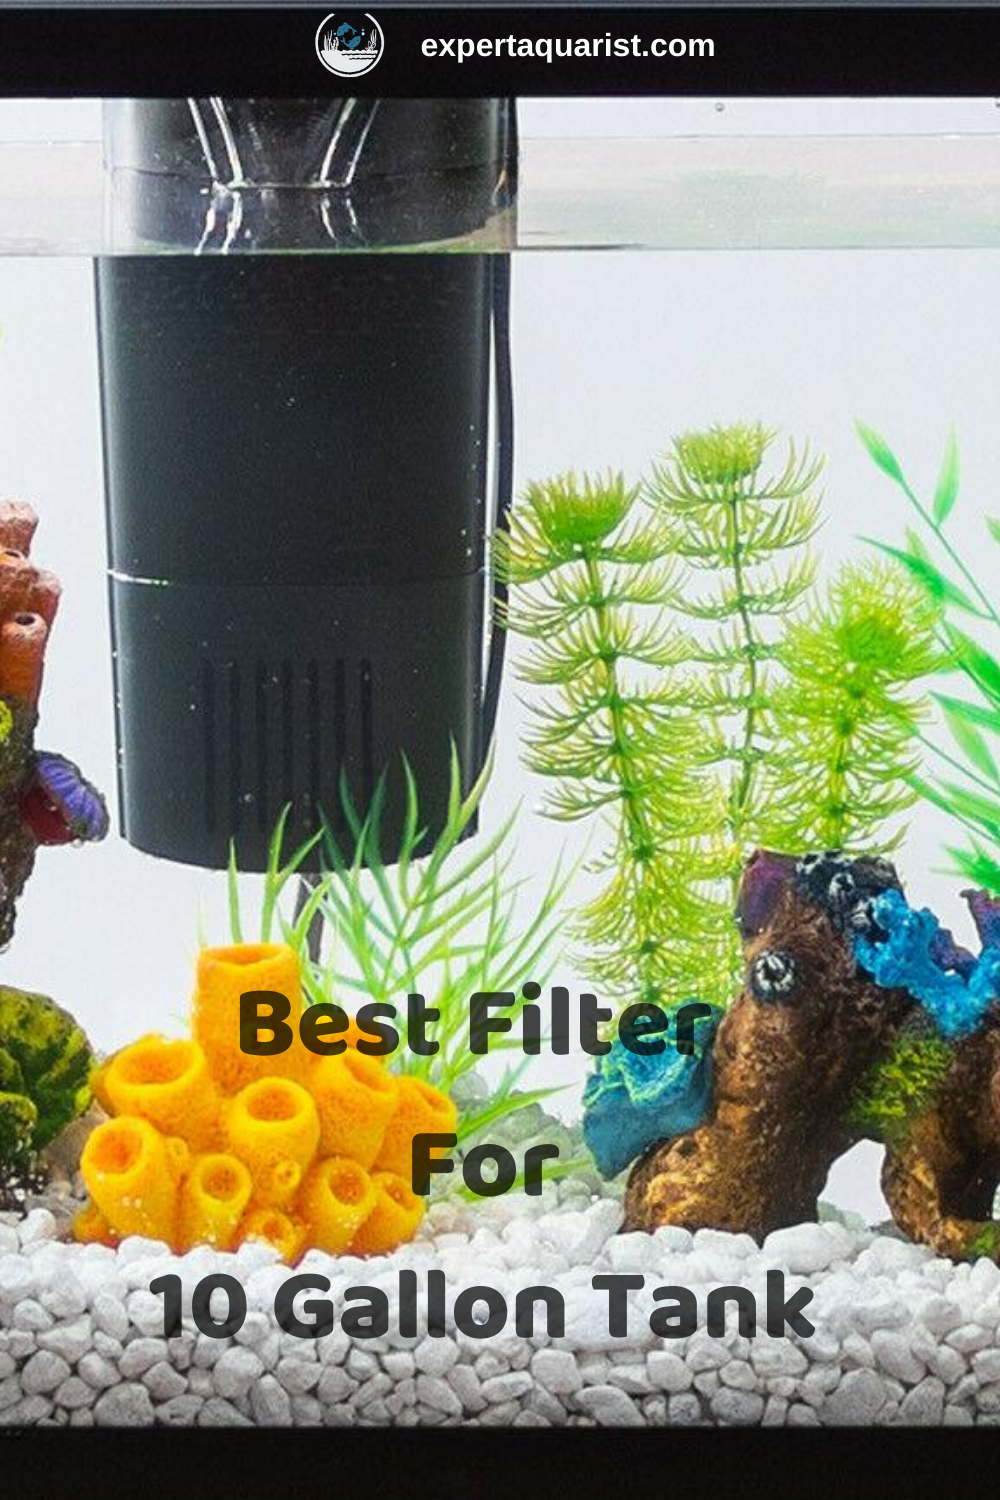 Best 10 Gallon Fish Tank Filter 2020 Reviews Comparison Best Aquarium Filter 10 Gallon Fish Tank Gallon